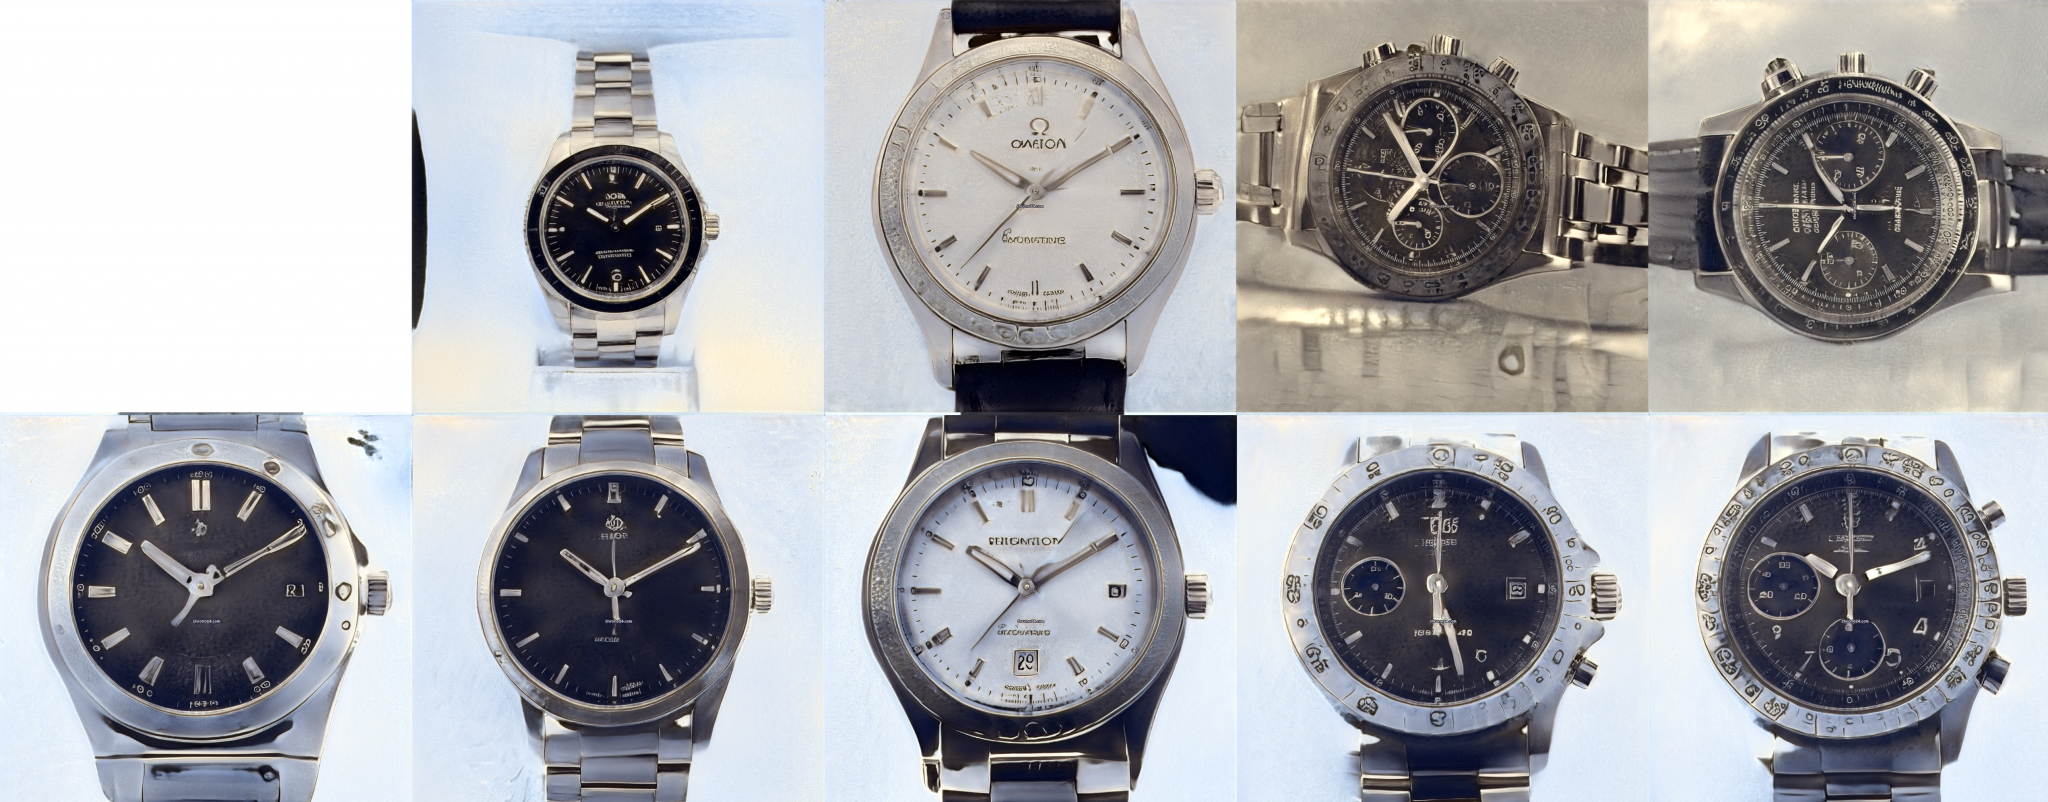 WatchGAN: Advancing generated watch images with styleGANs - Digital